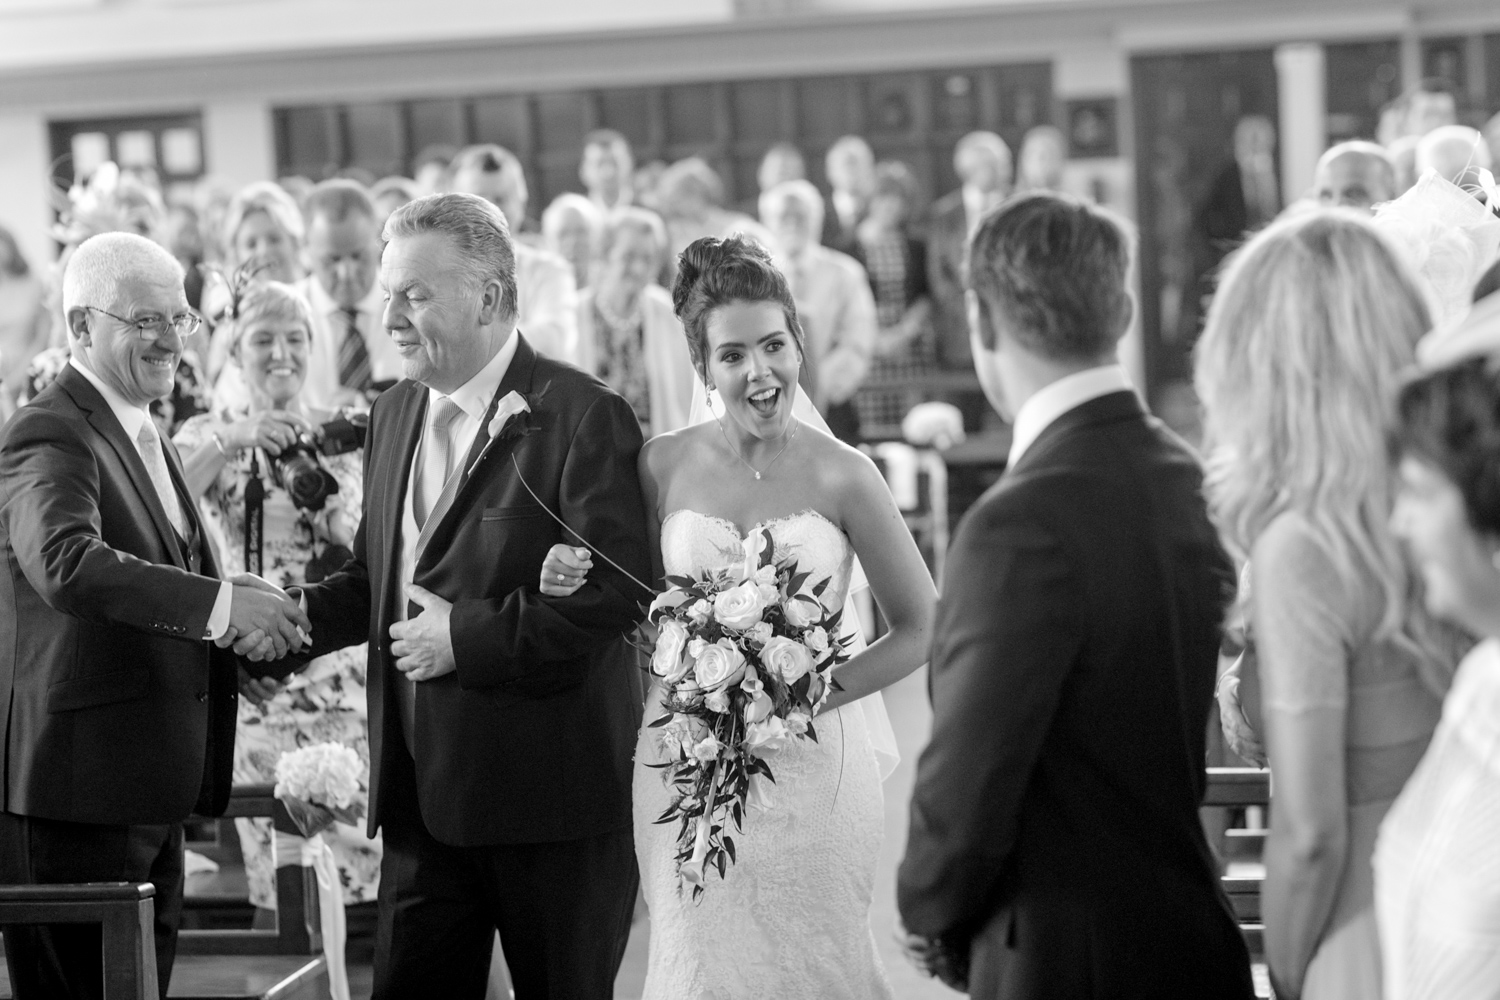 bride walks down the aisle with her did smiling at the guests